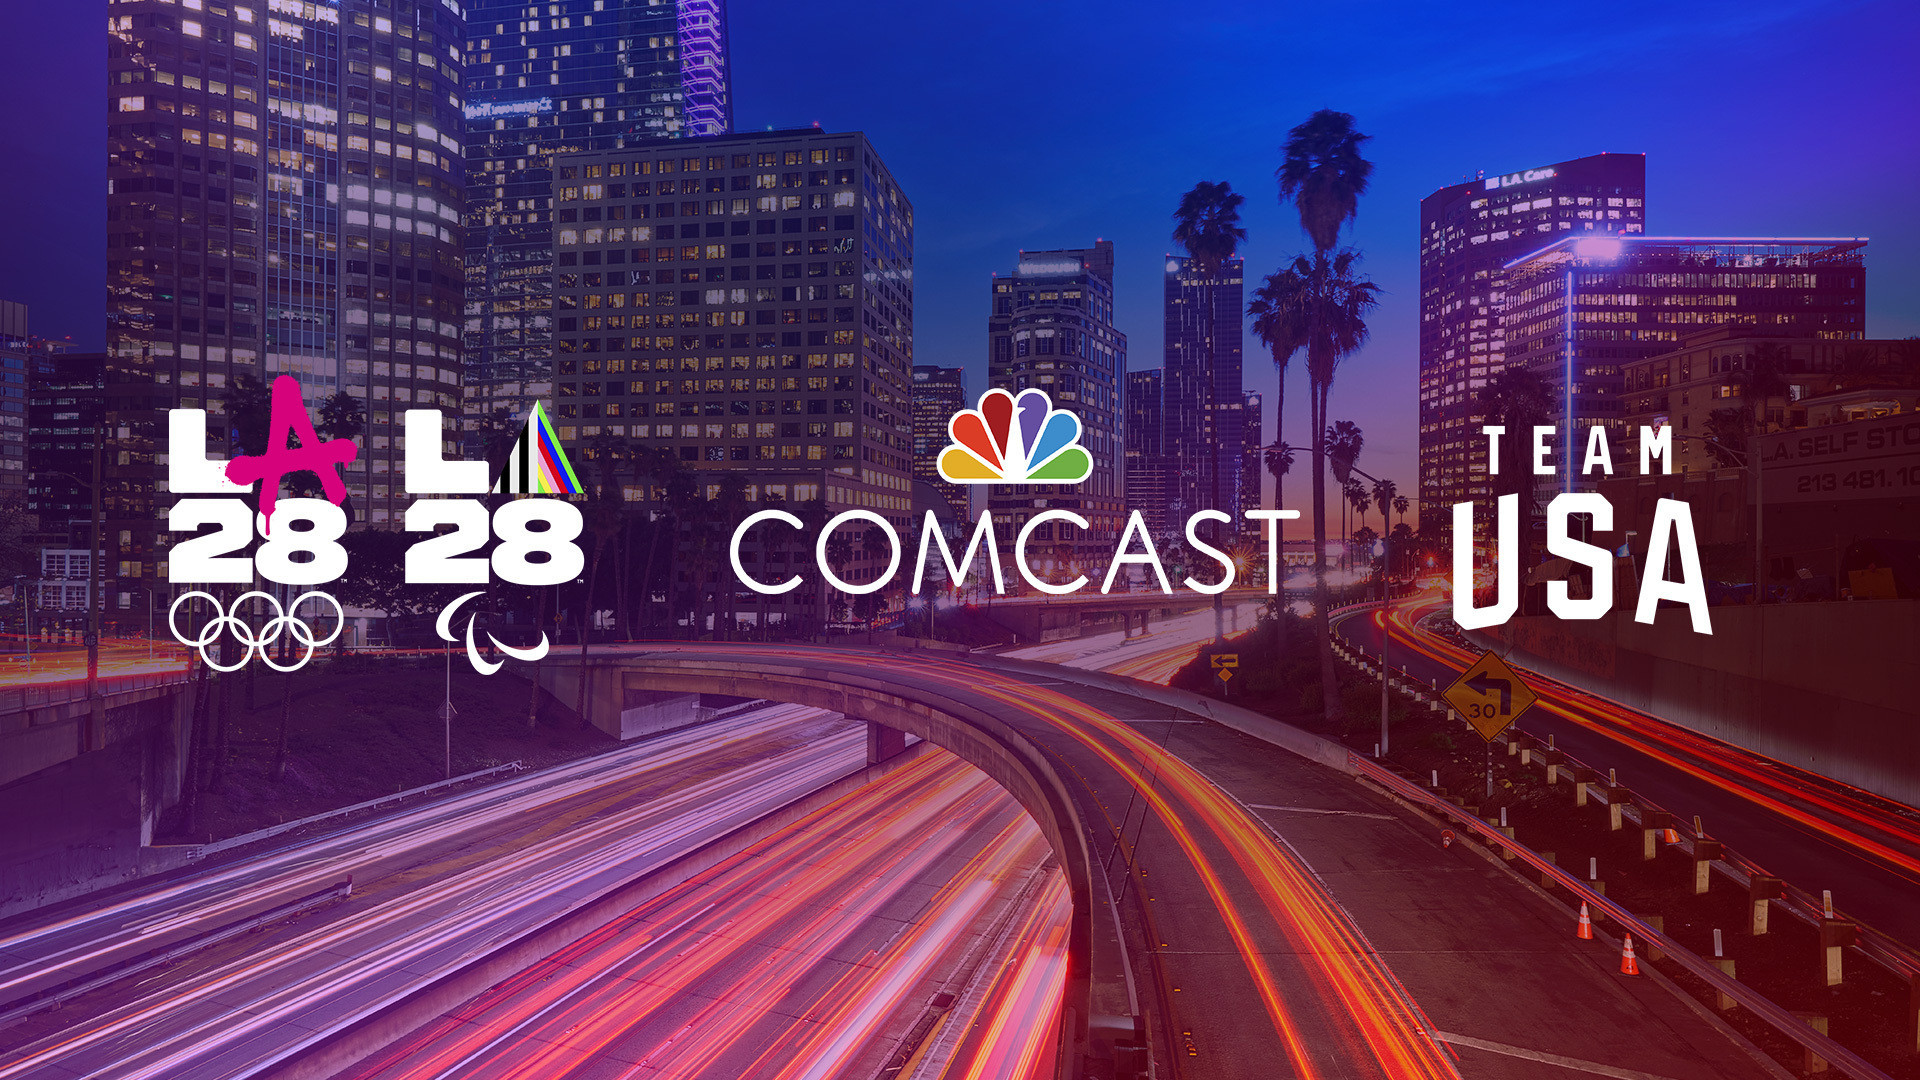 Telecommunications conglomerate Comcast has become the second founding partner of the Los Angeles 2028 Olympics and Paralympics ©LA28